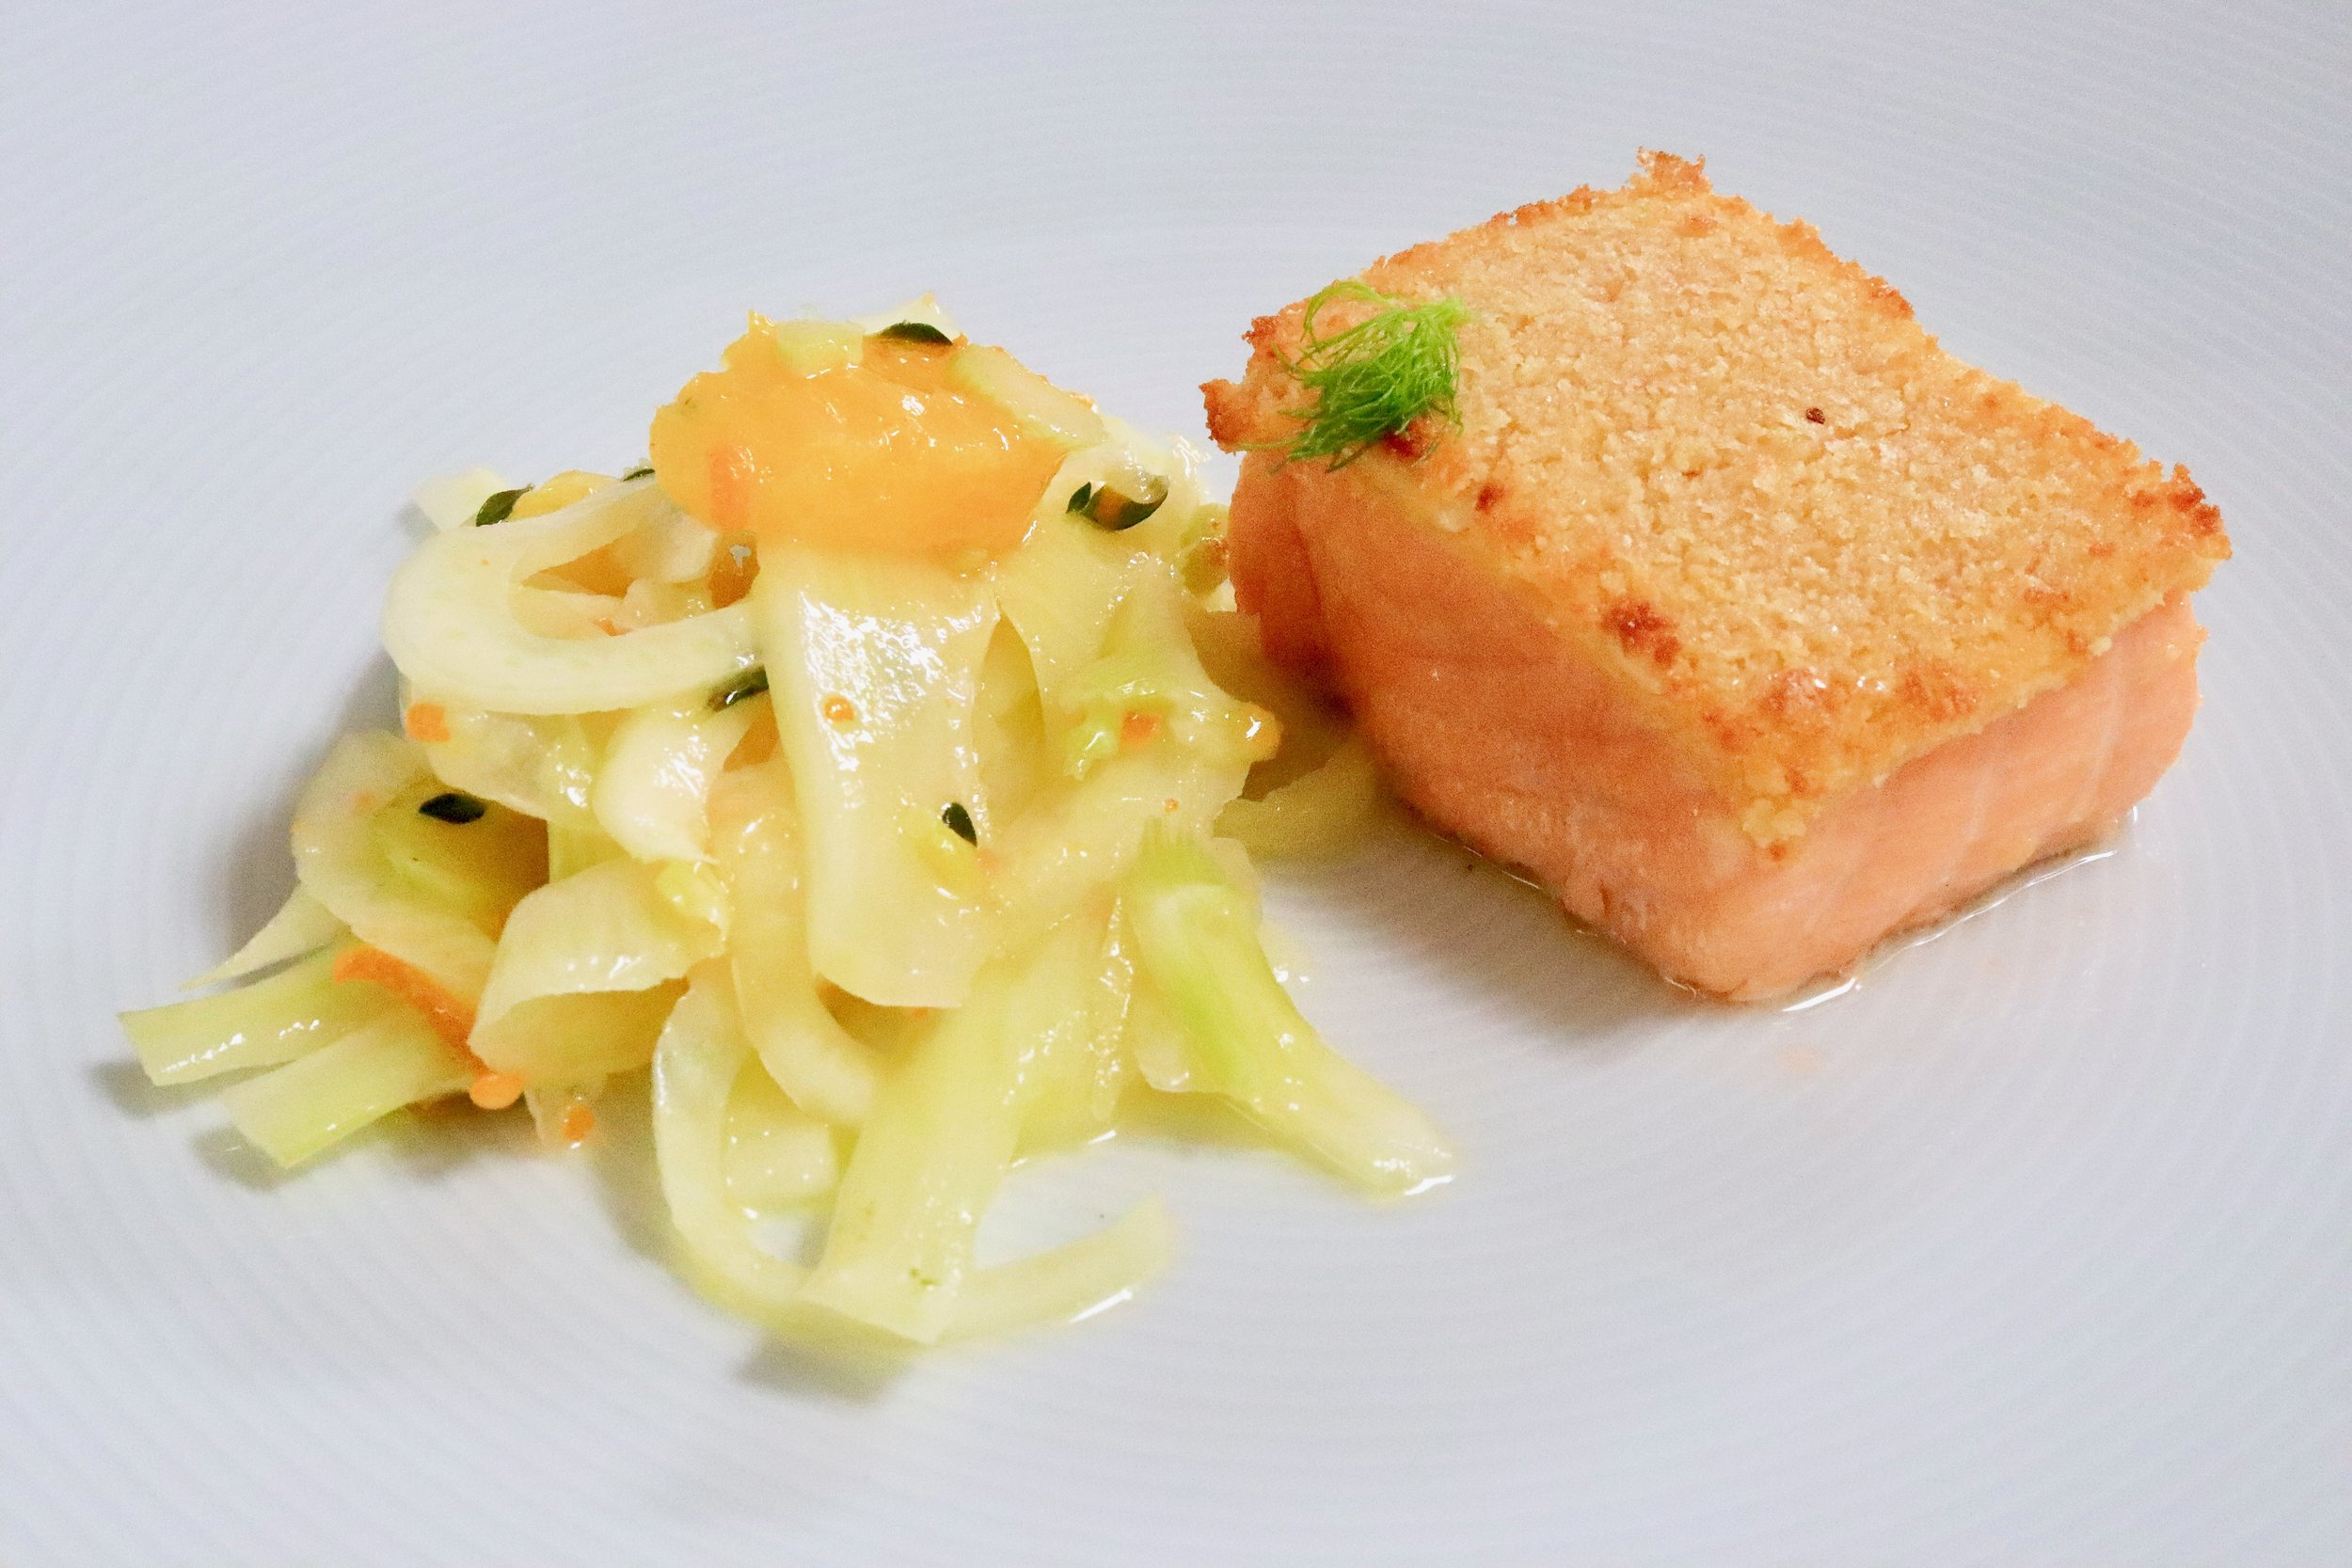 My version of almond crusted salmon with fennel, orange and lemon thyme salad